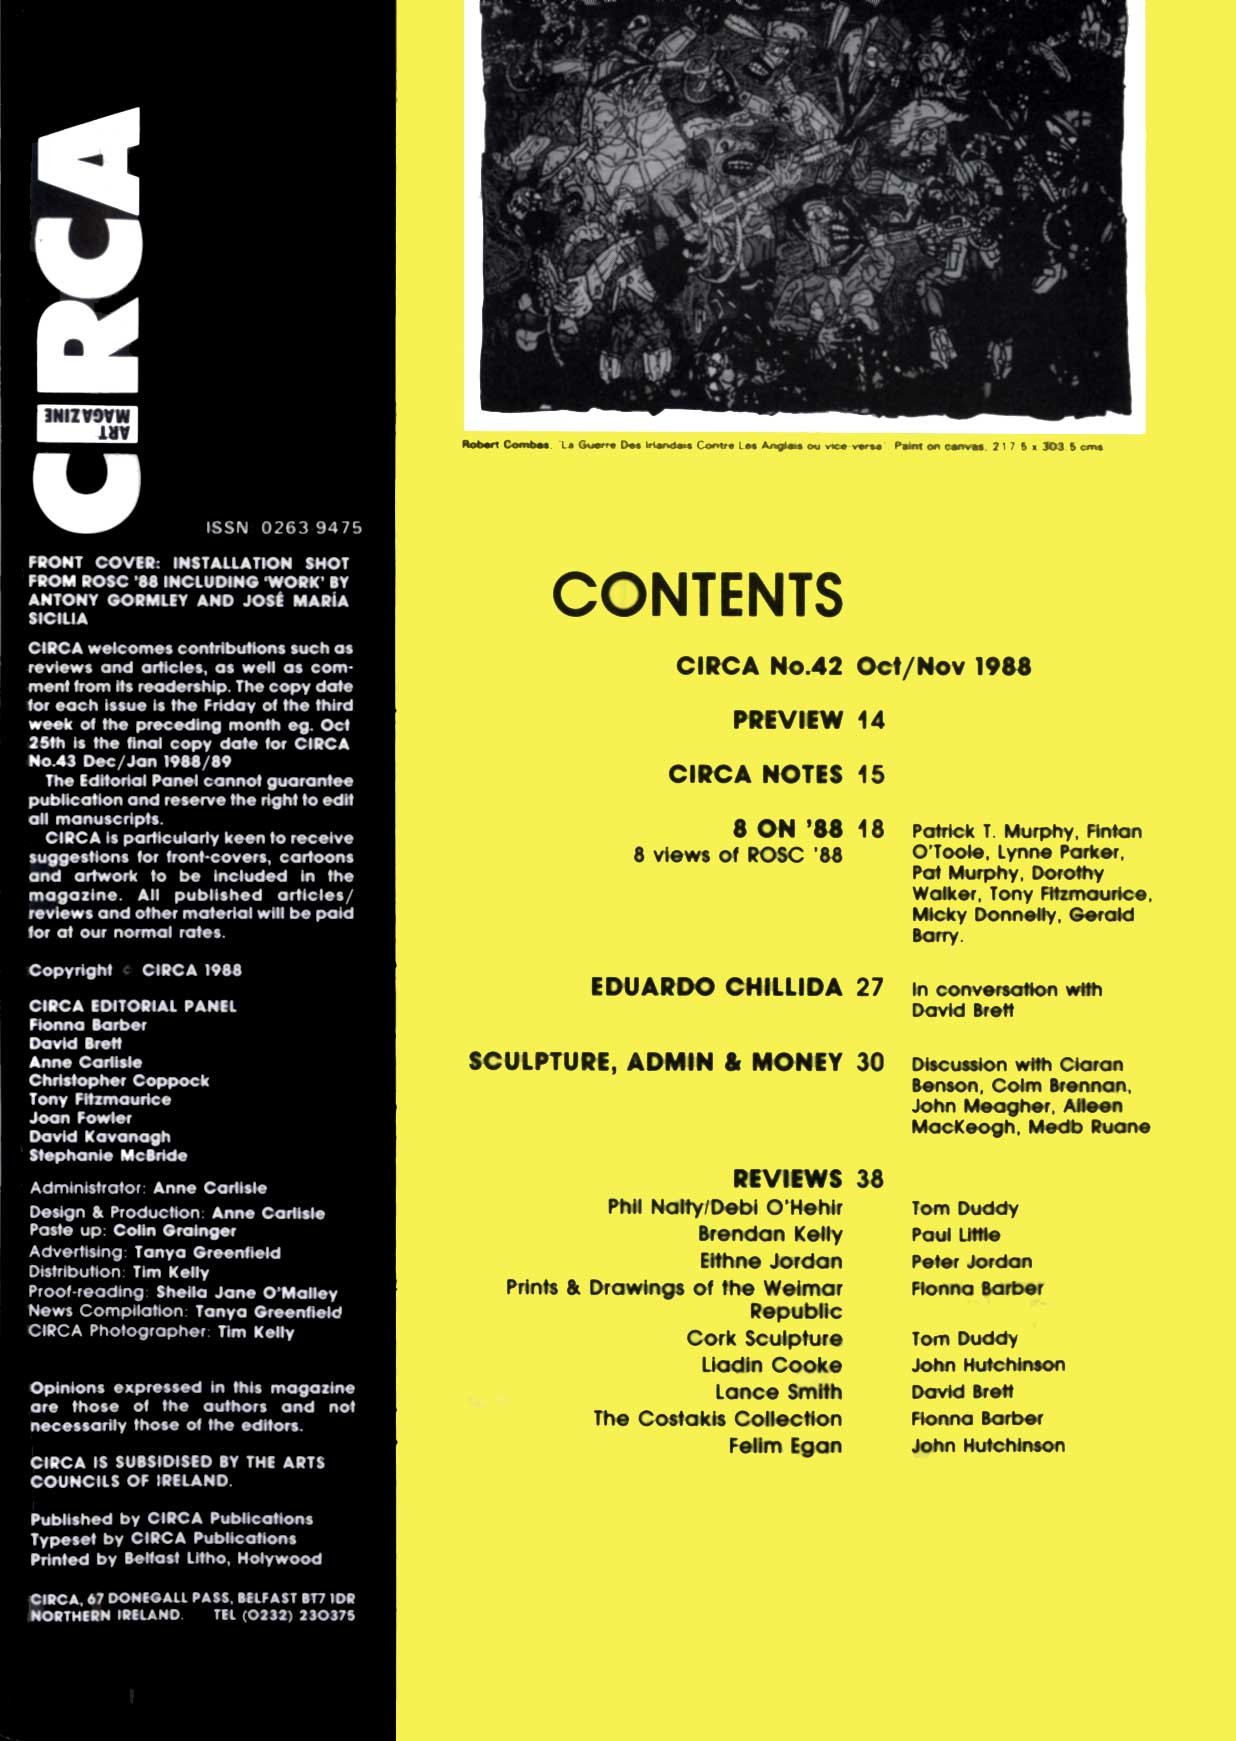 CIRCA Issue #42 – October/November 1988 [Page 3]